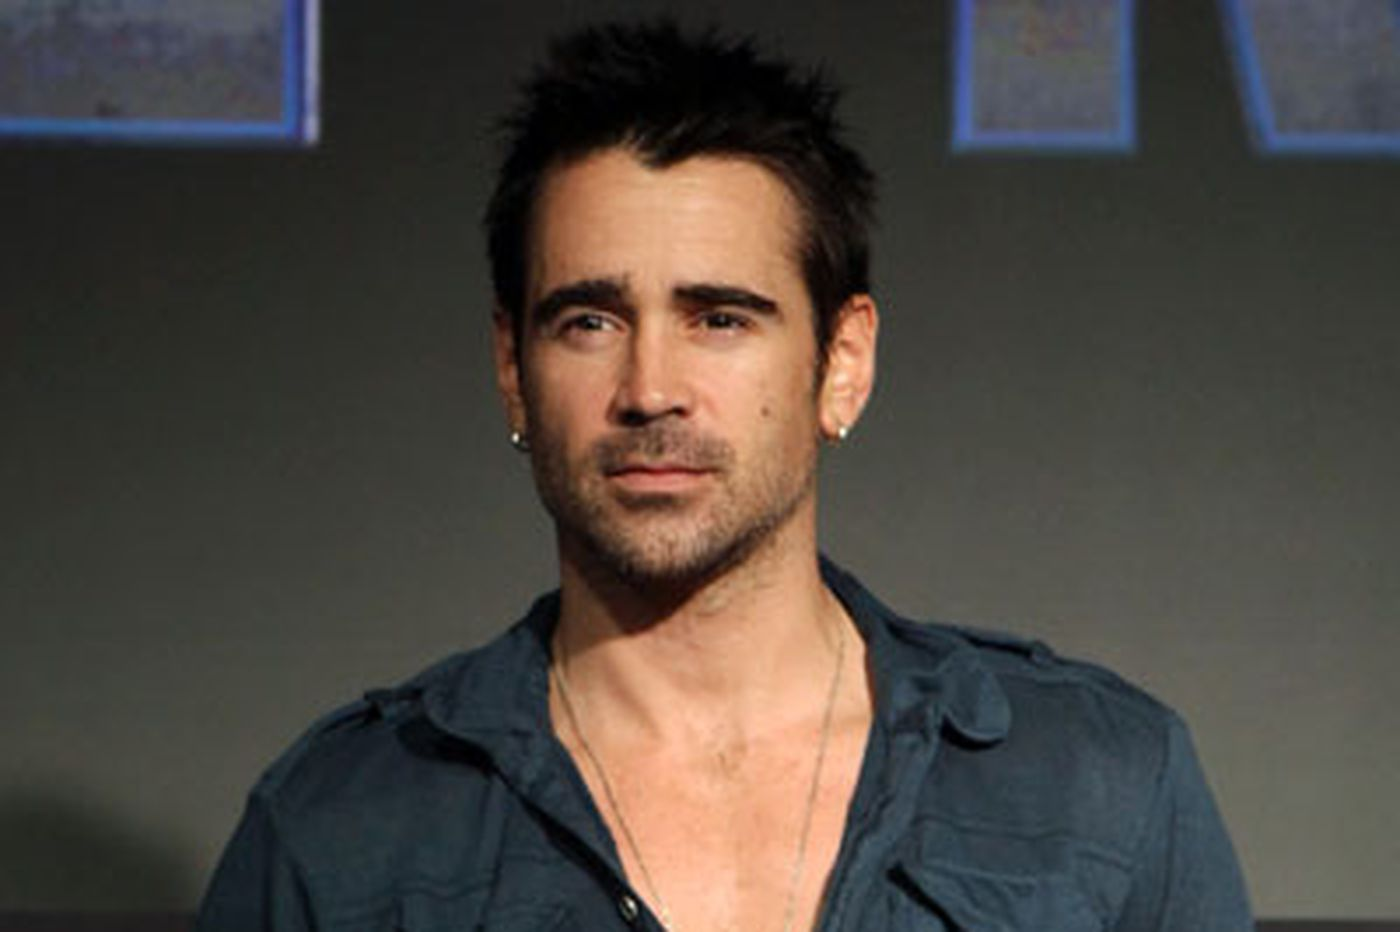 Fathers' Day weekend fun for Colin Farrell